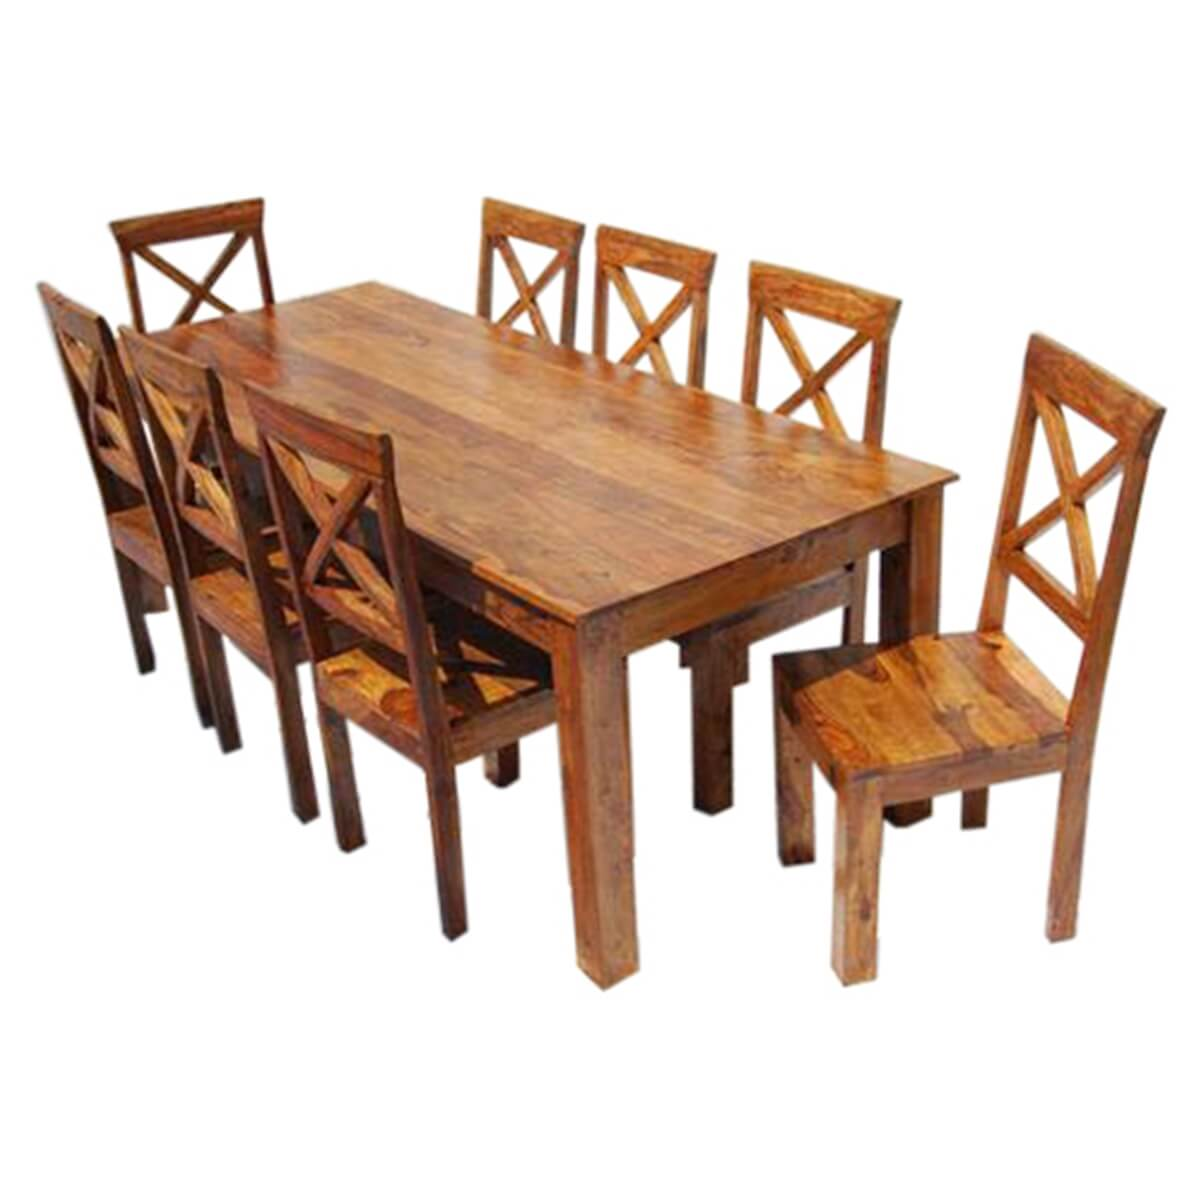 Rustic Solid Wood Large Square Dining Table Chair Set: Large Rustic Oklahoma Solid Wood Dining Table & Chair Set